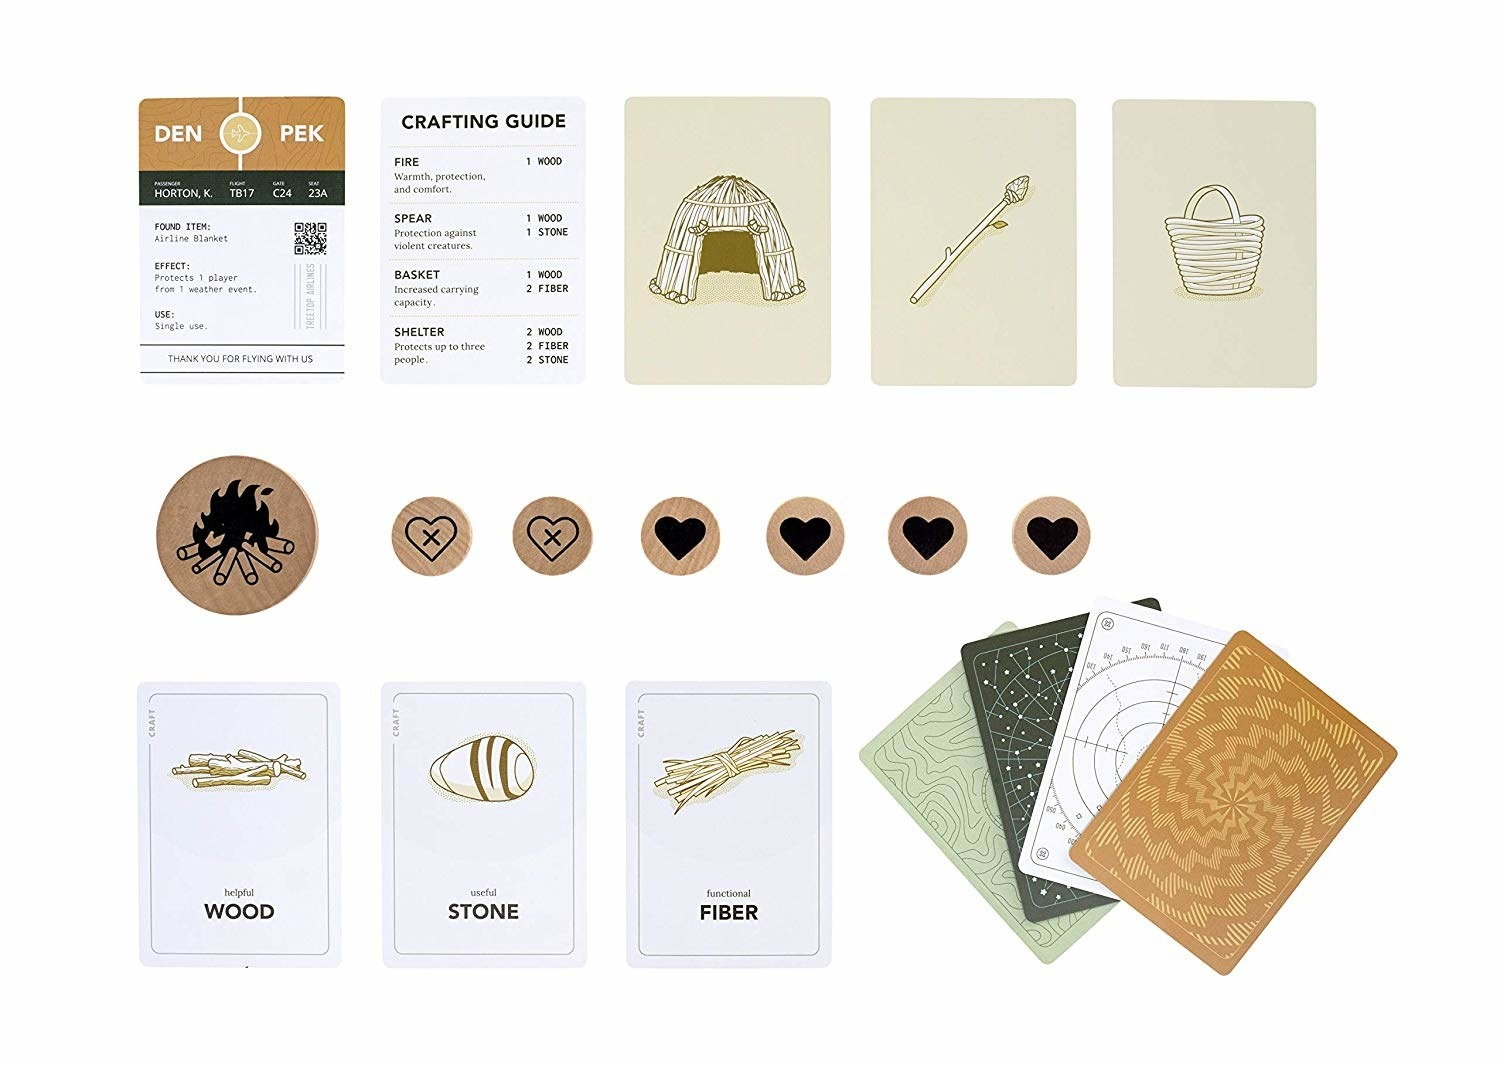 cards and coins from the game